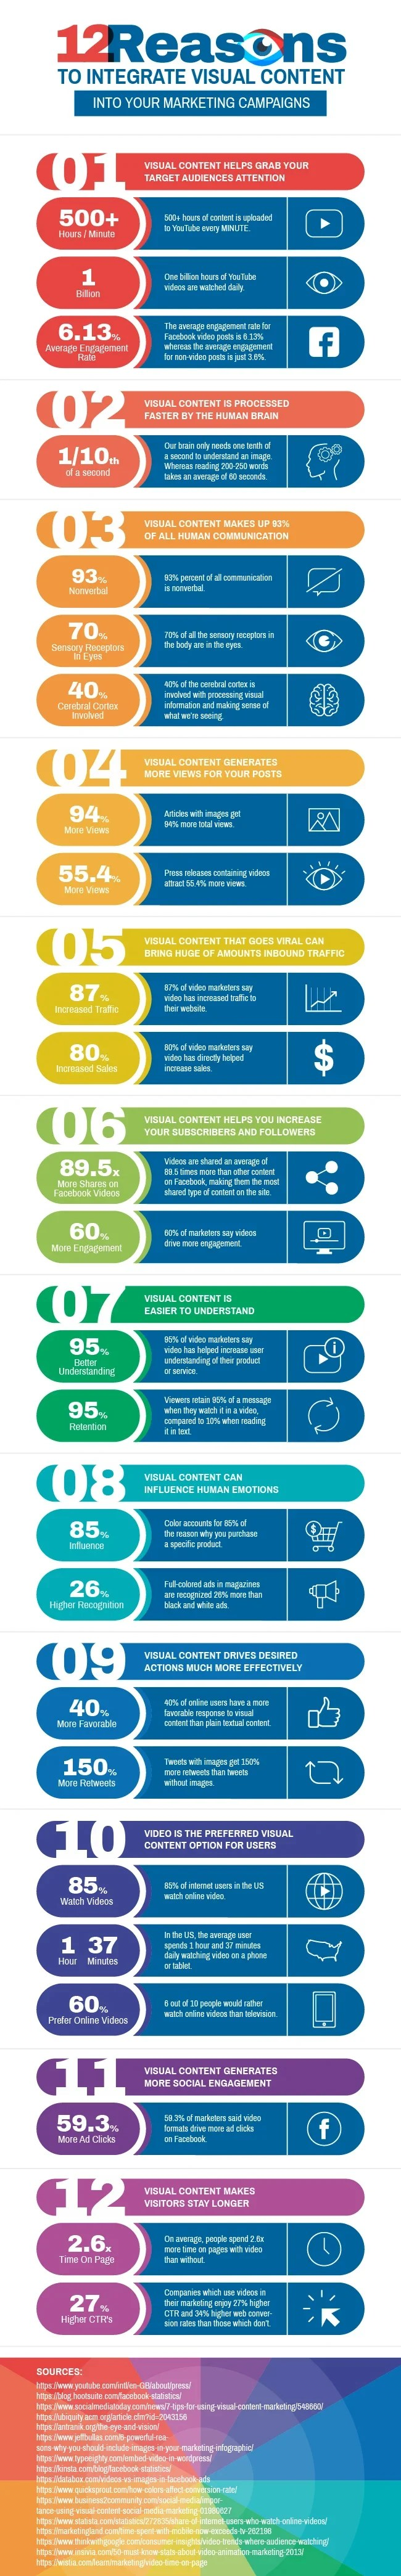 12 visual content stats infographic